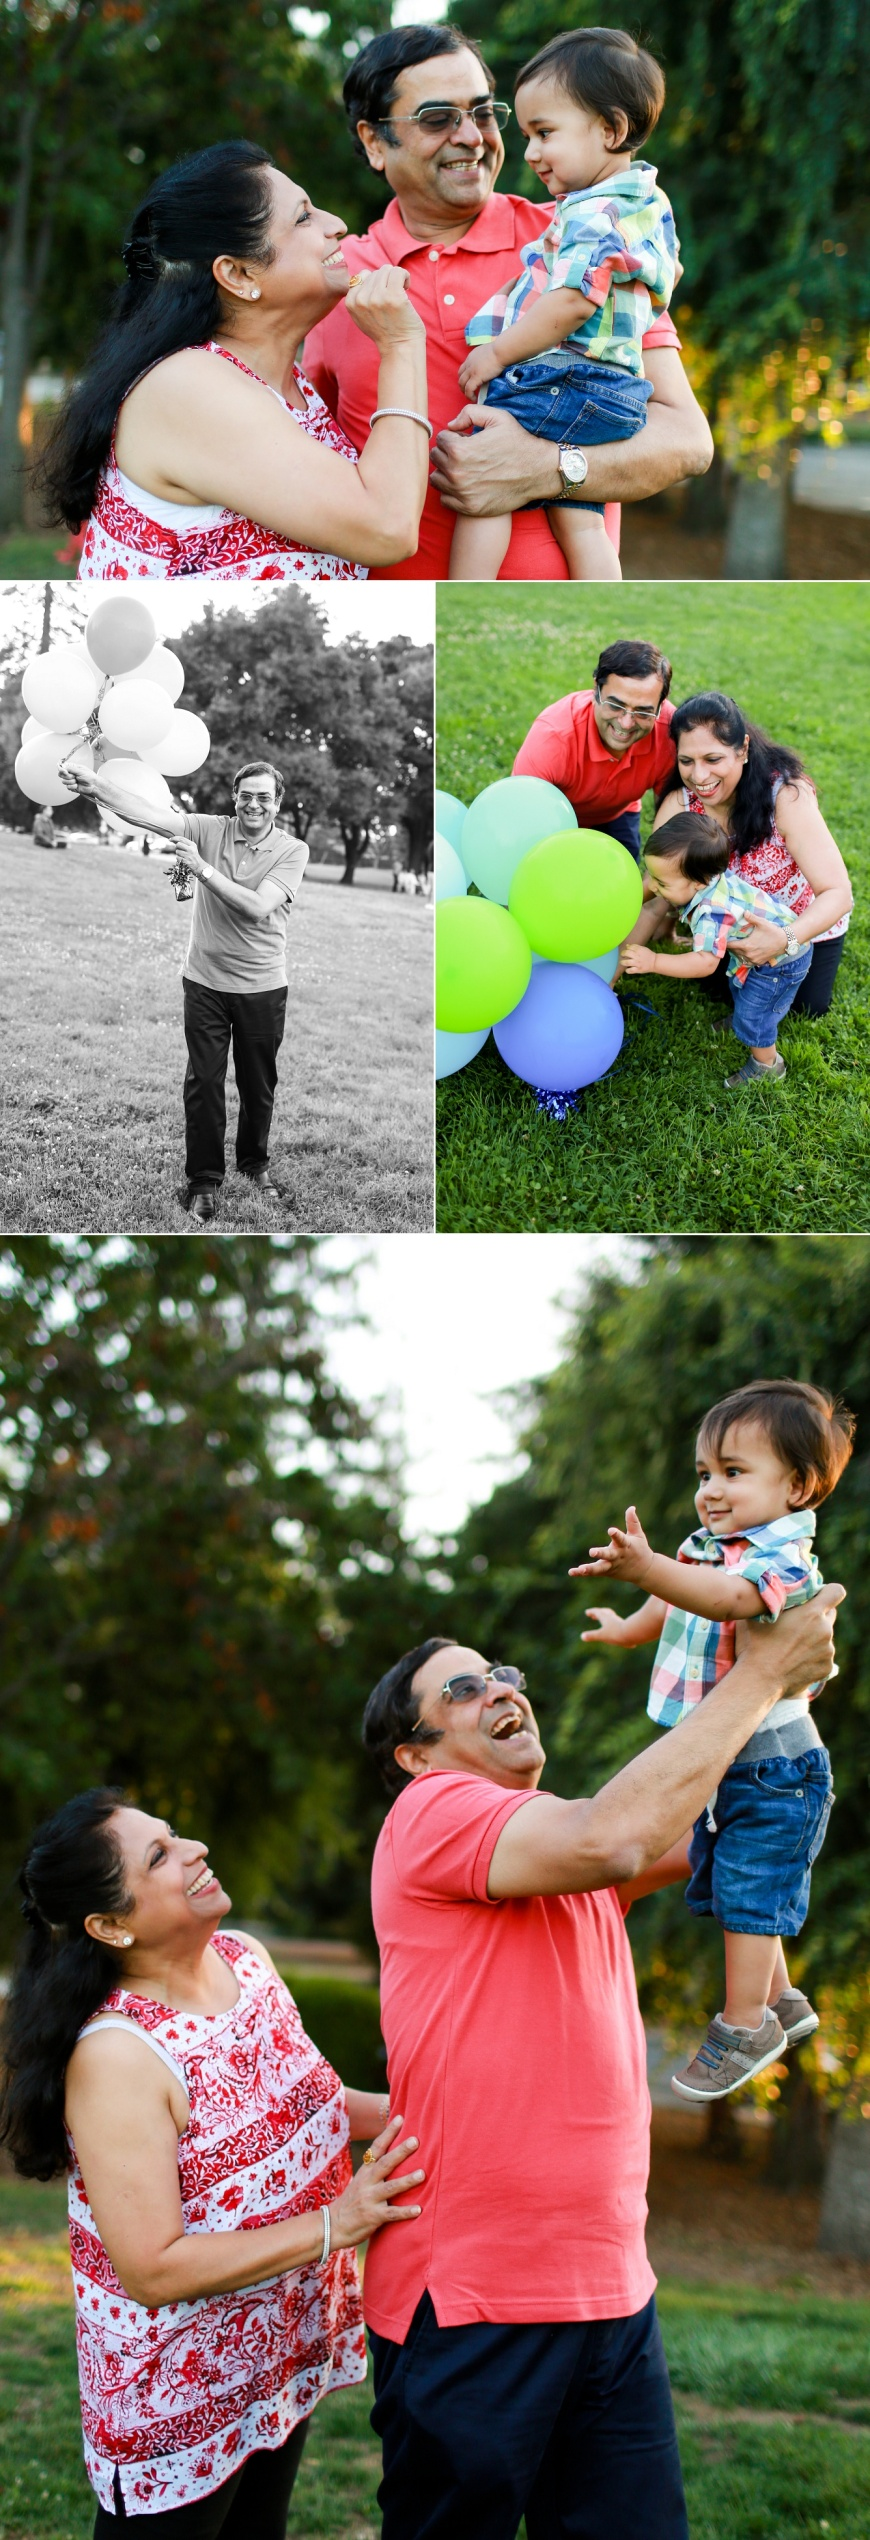 Jollyman-Park-Cupertino-Family-Photographer_1020.jpg